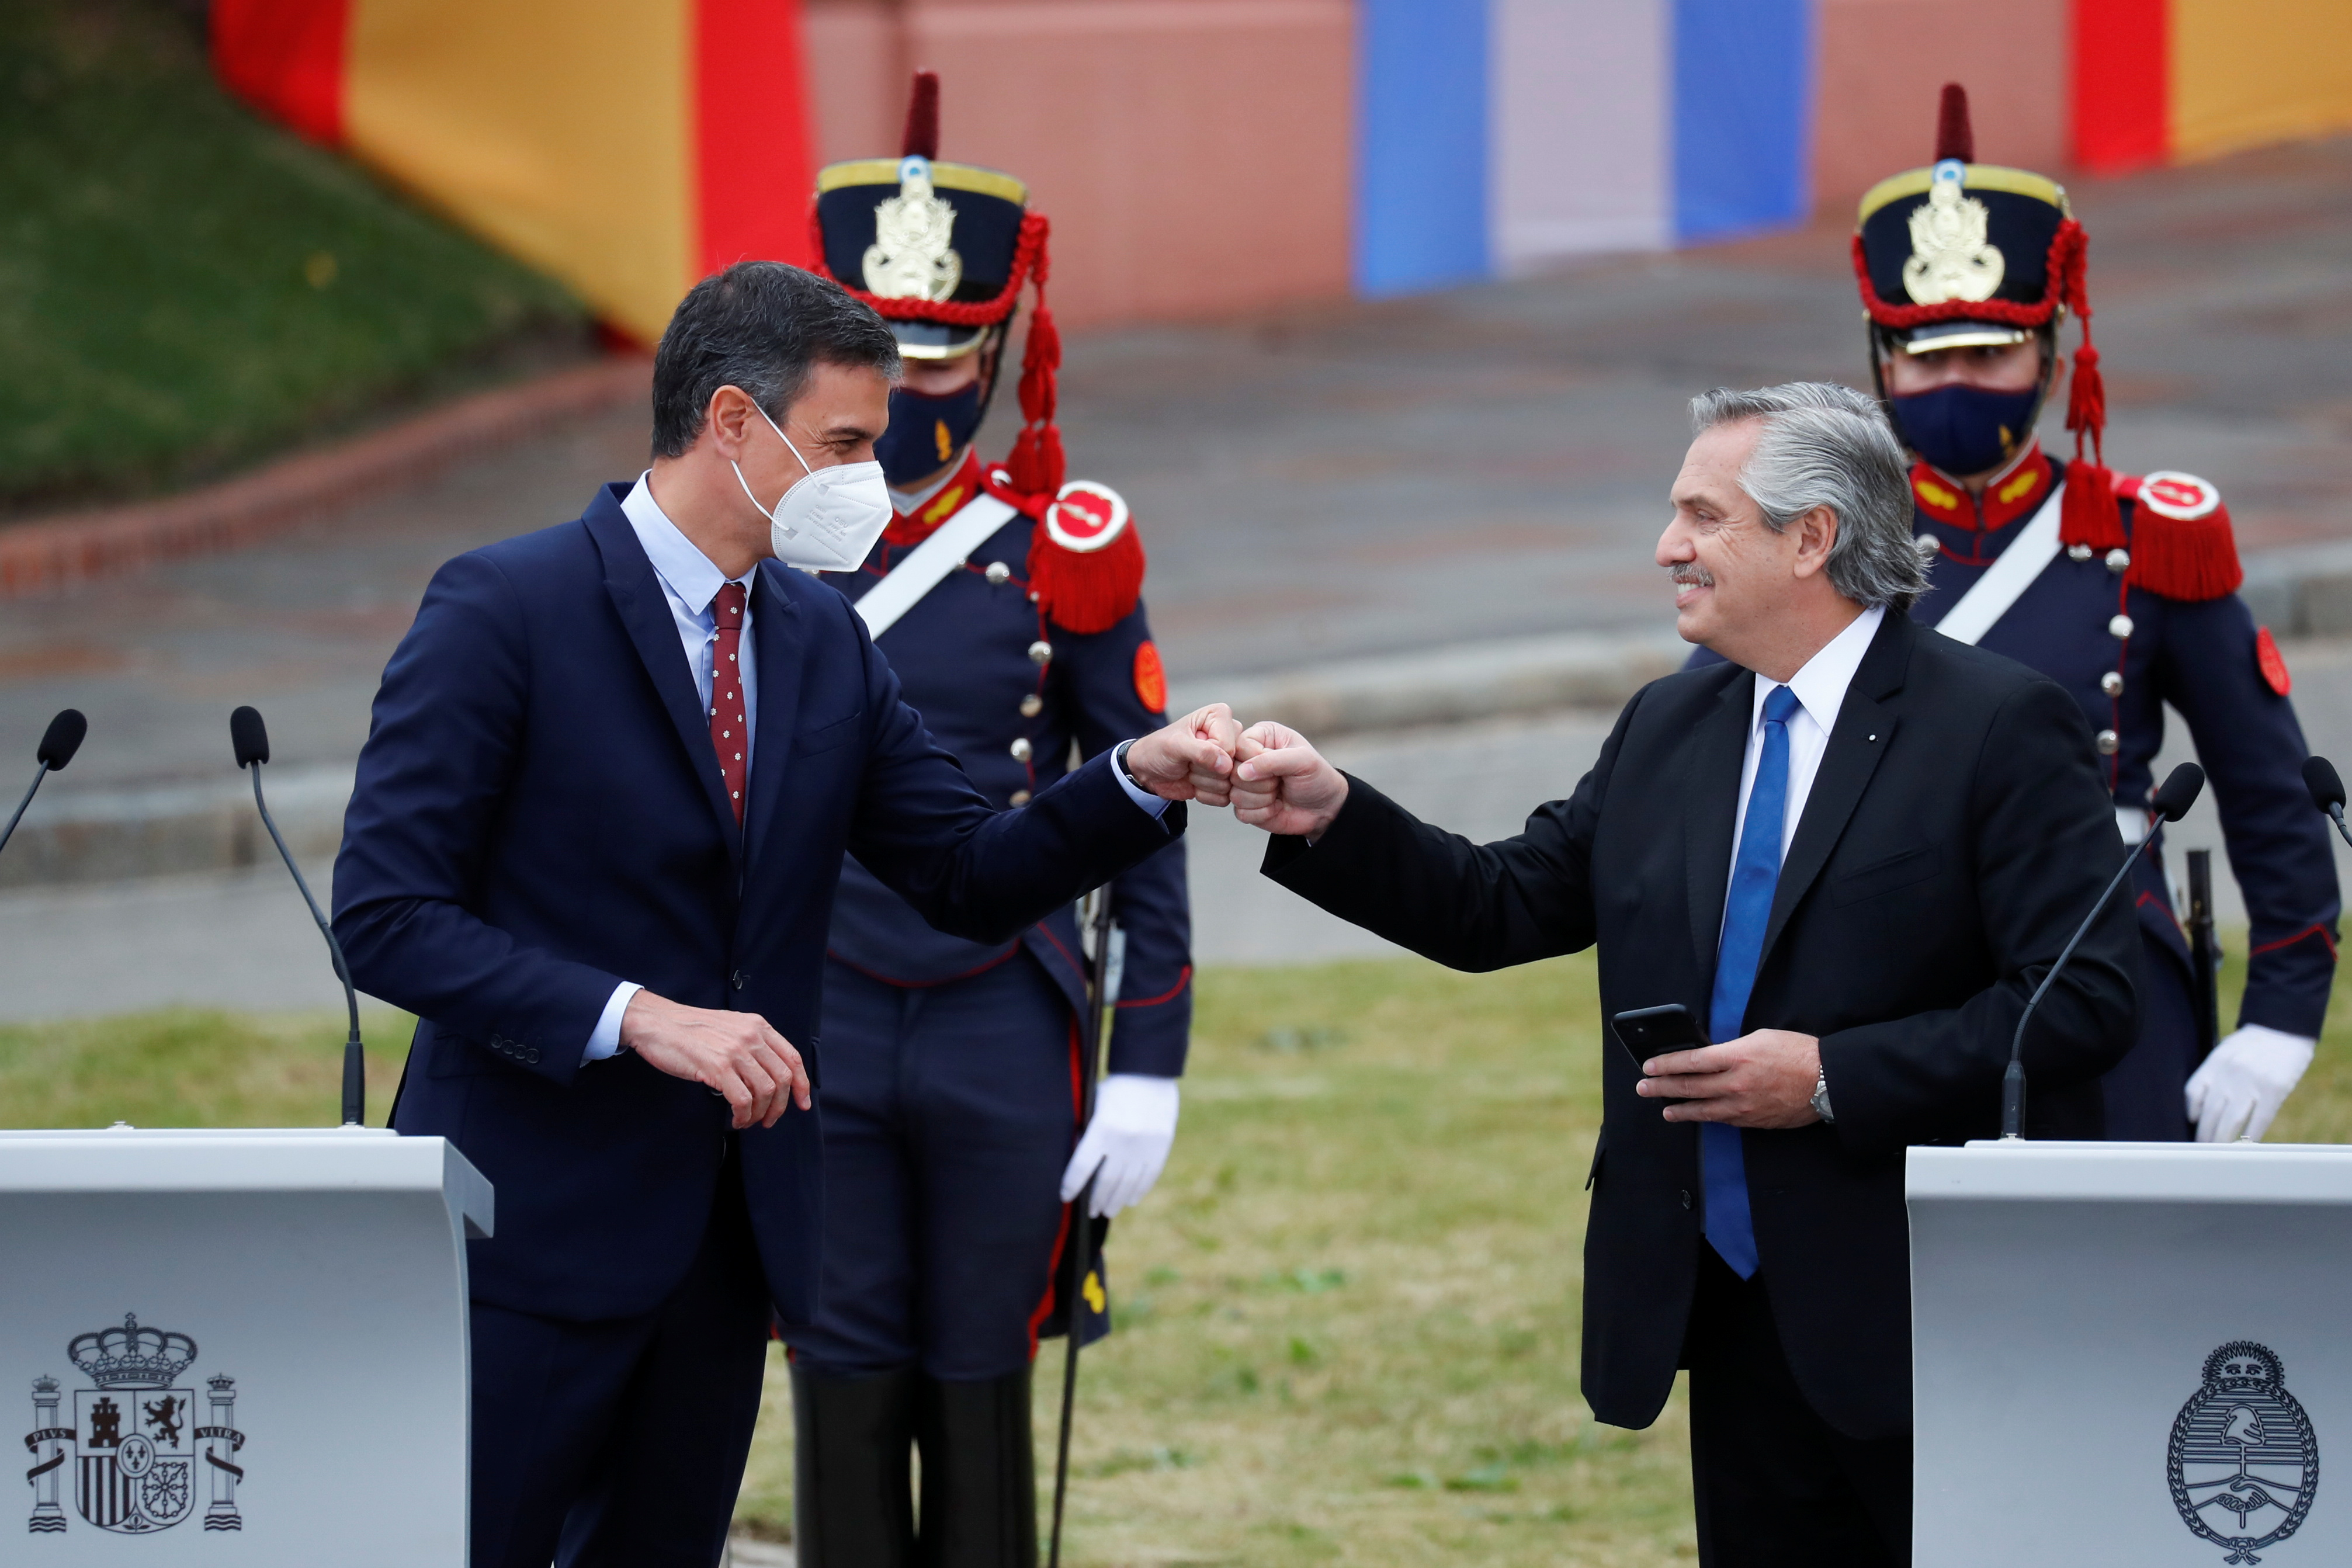 Argentina's President Alberto Fernandez fist bumps Spain's Prime Minister Pedro Sanchez at the Casa Rosada presidential palace, in Buenos Aires, June 9, 2021. REUTERS/Agustin Marcarian